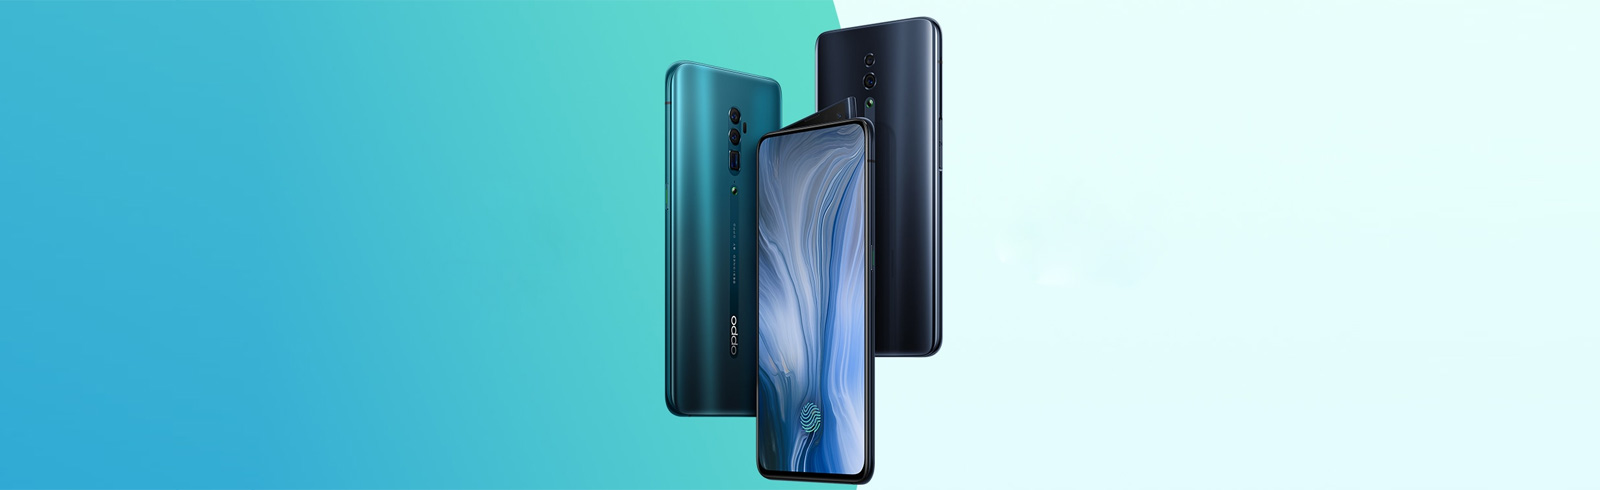 Oppo Reno and Oppo Reno 10x Zoom are announced